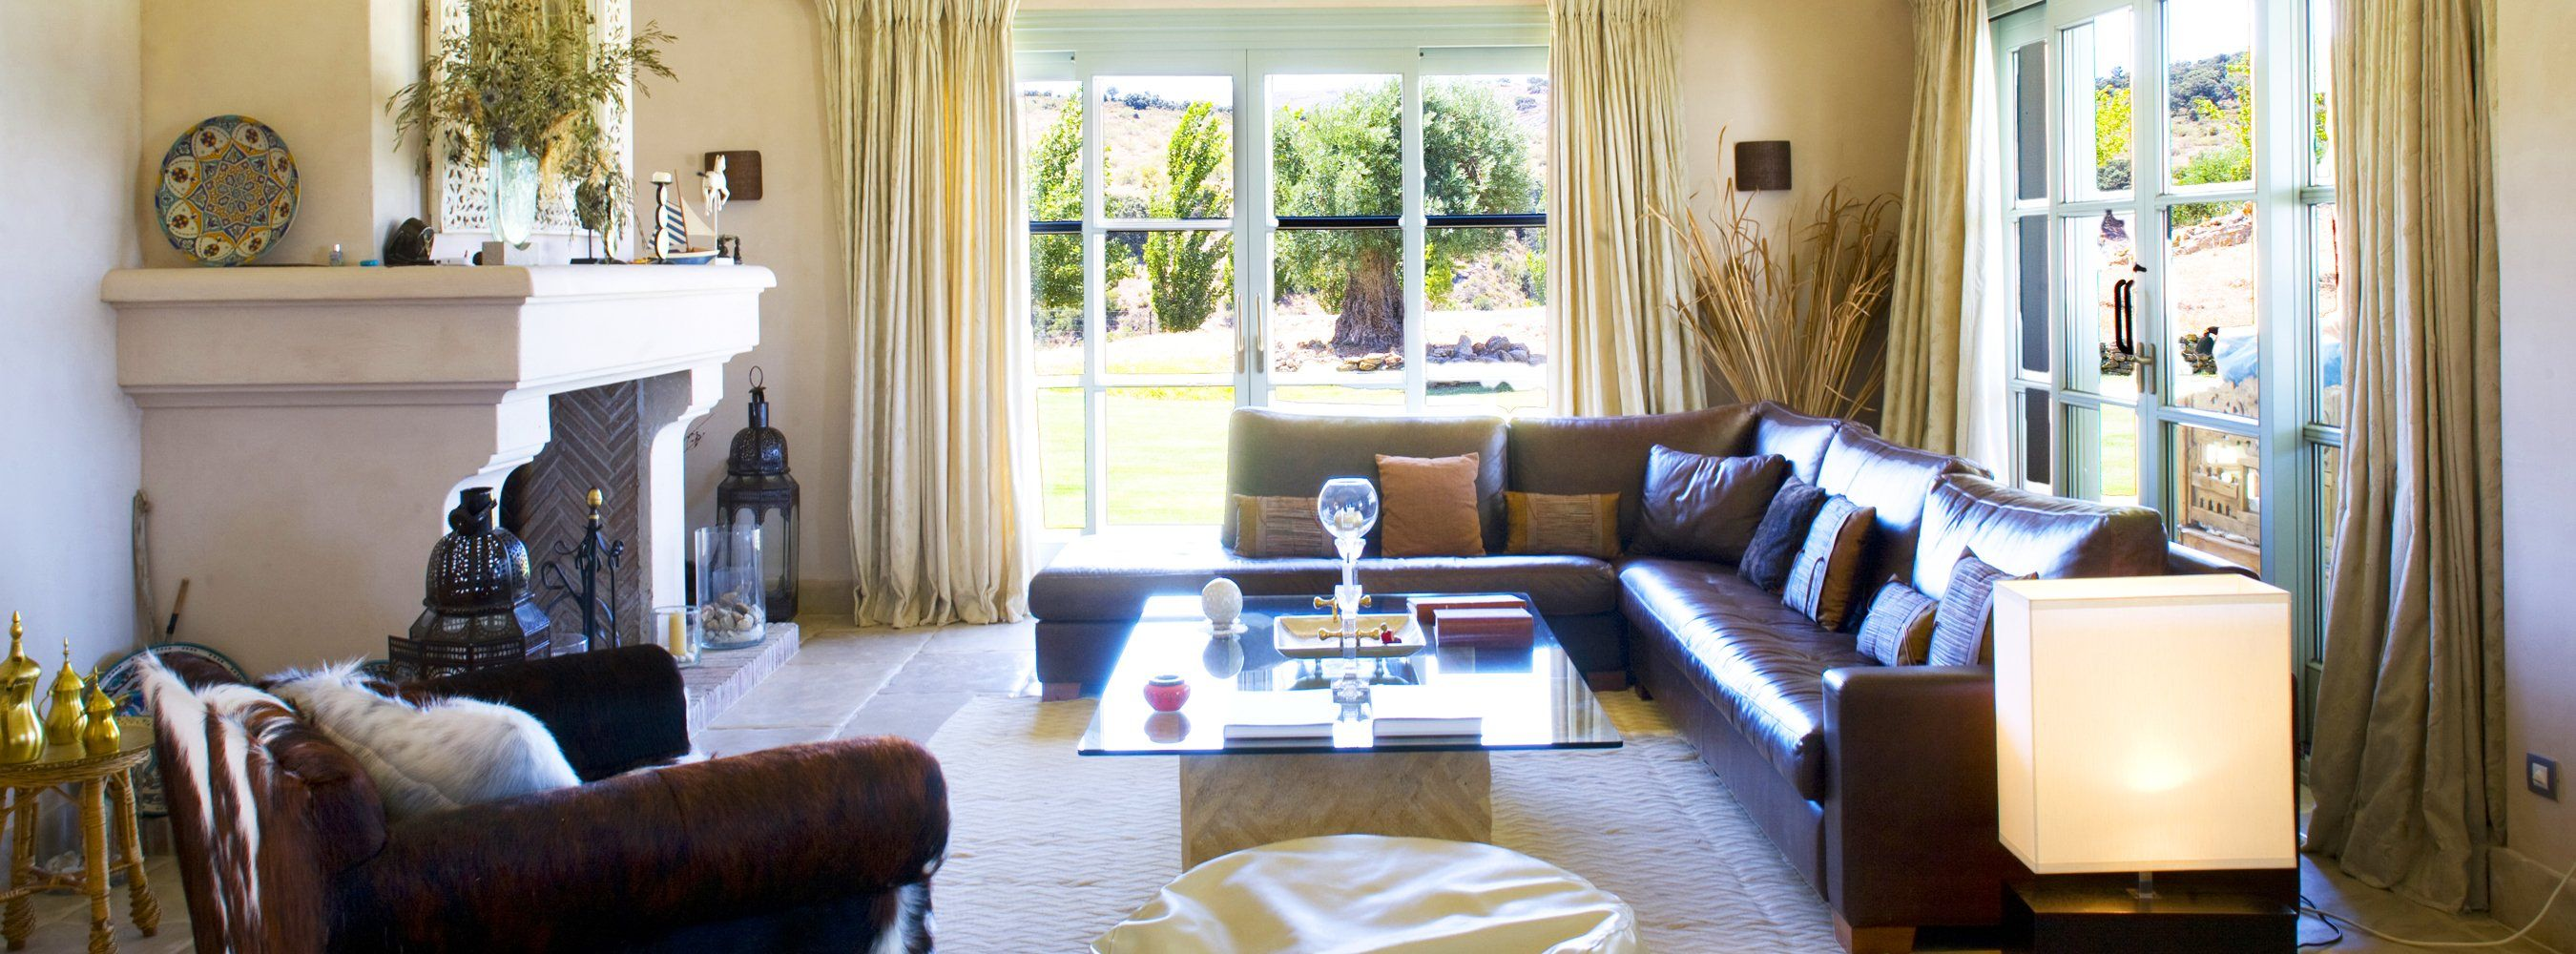 sitting room luxury villas andalucia